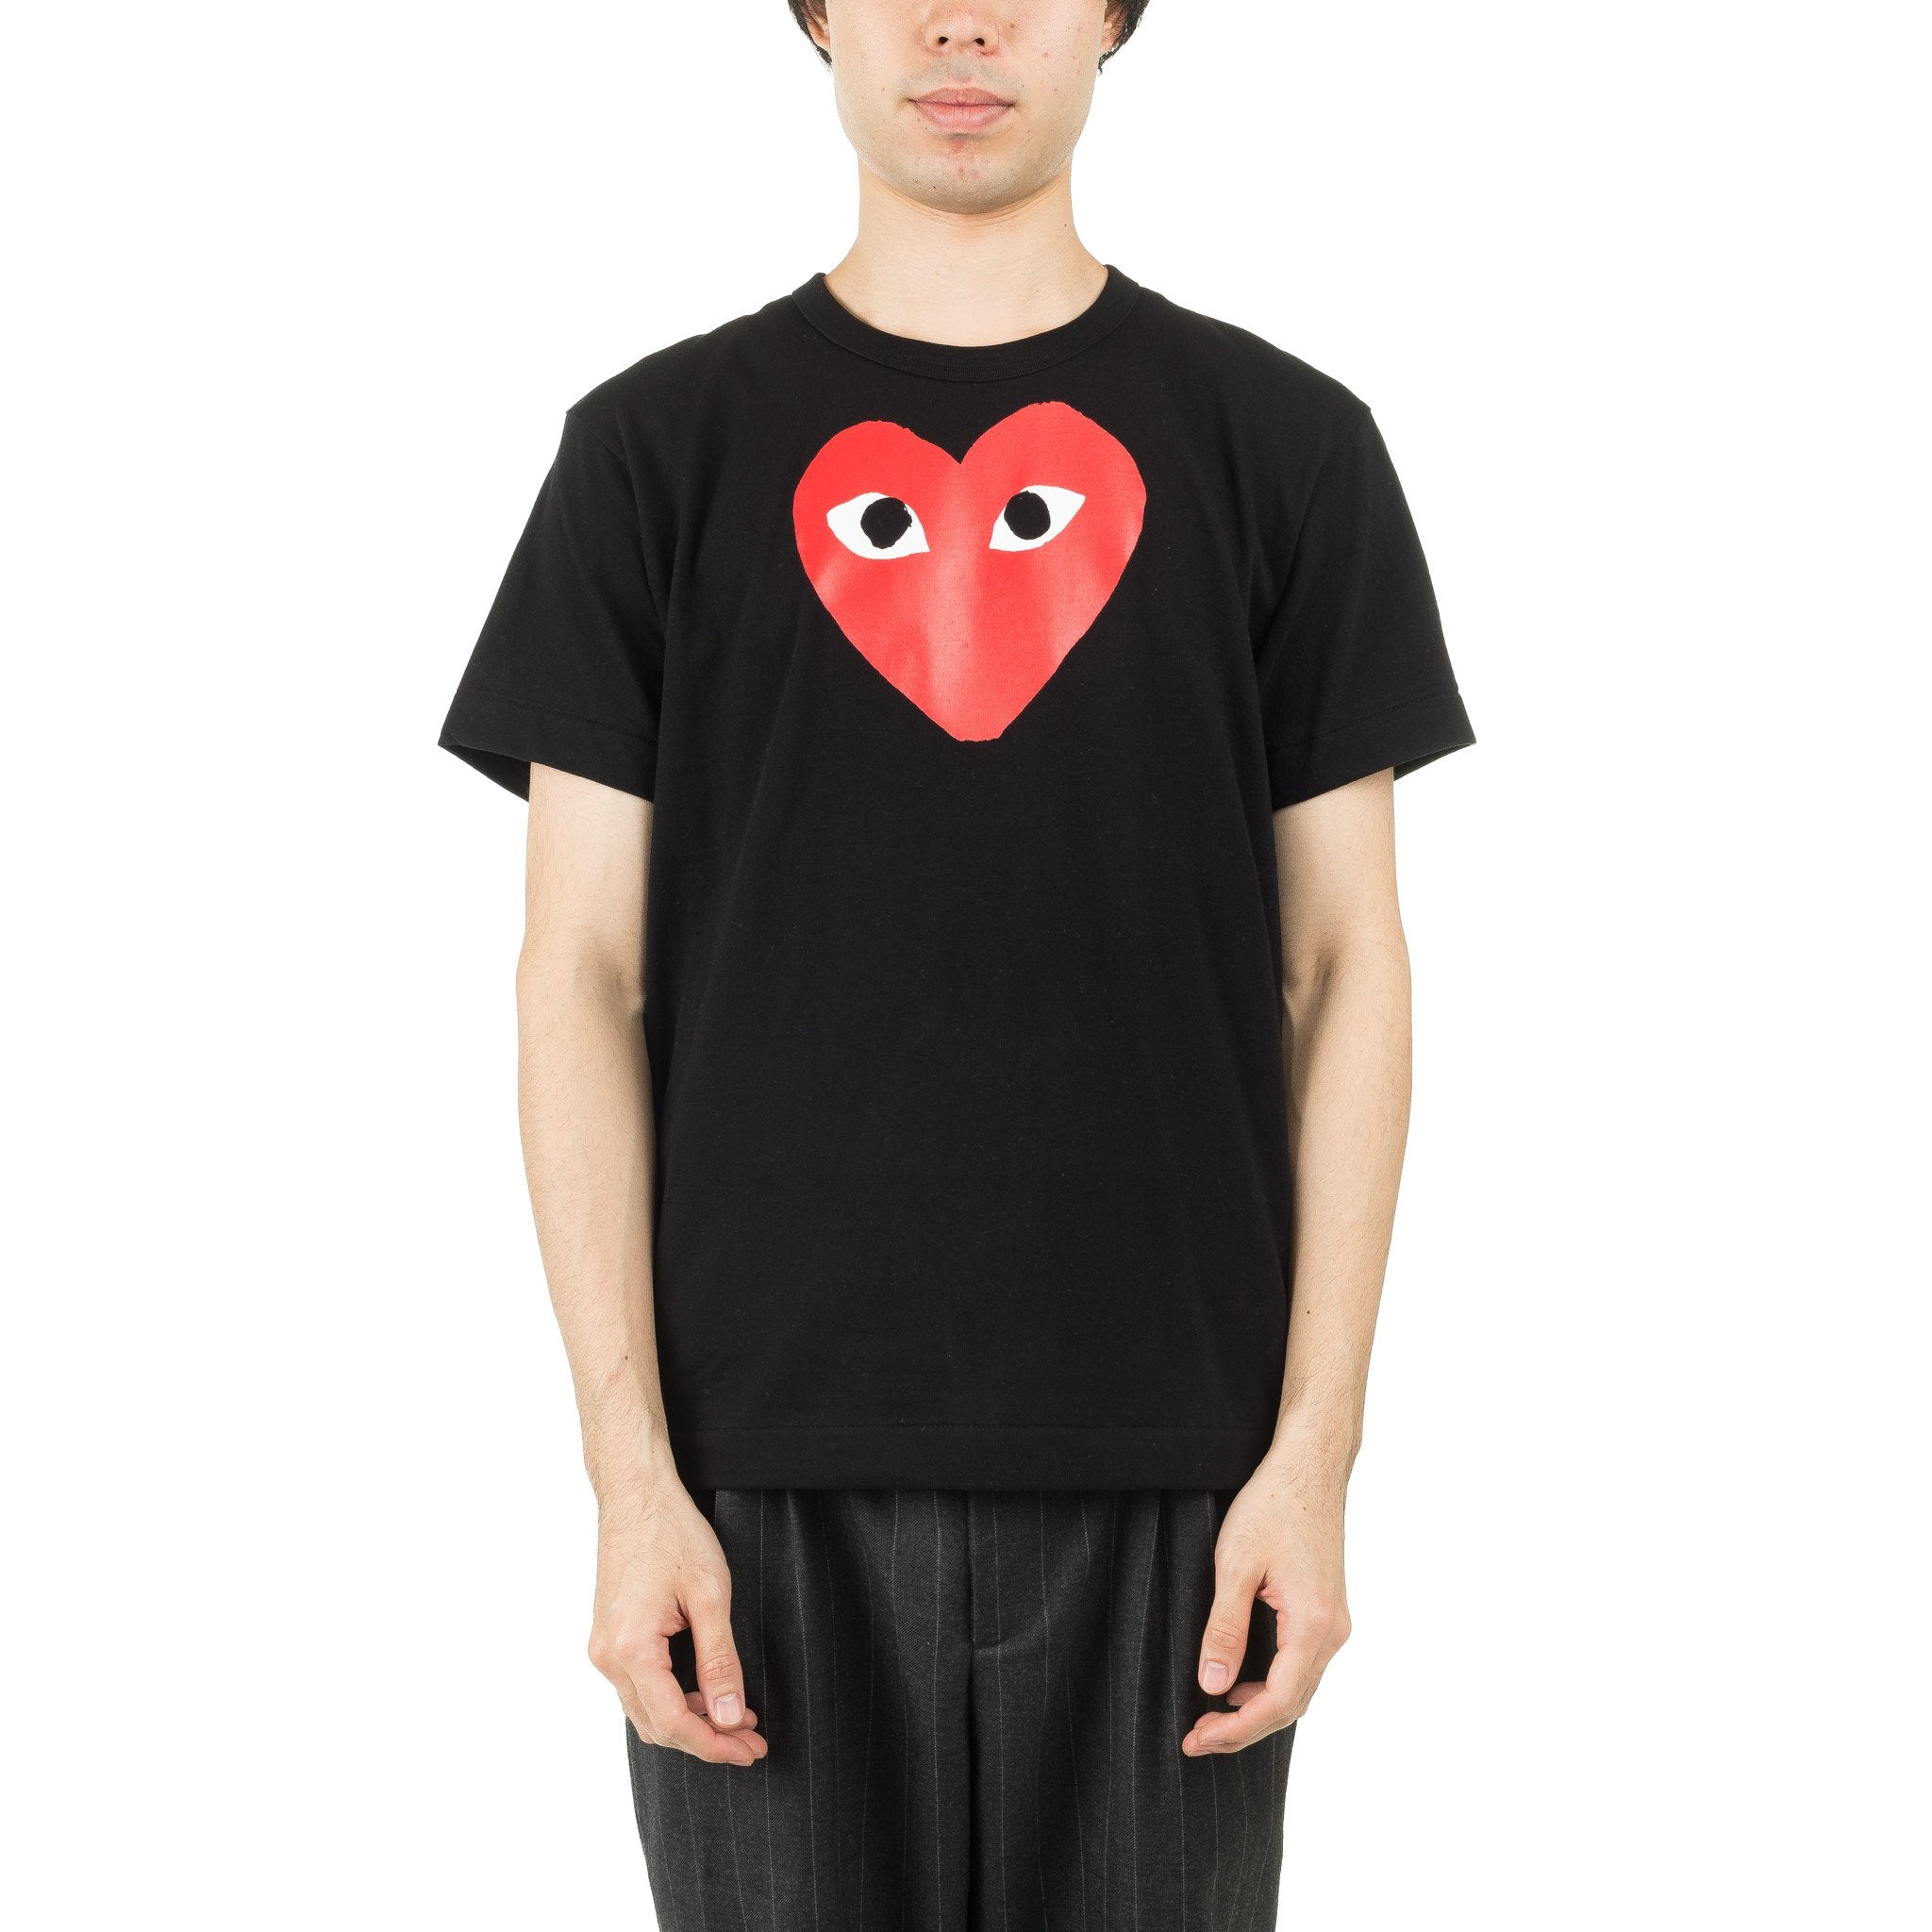 HEART PRINTED RED AZ-T112-051-1 Tee Black